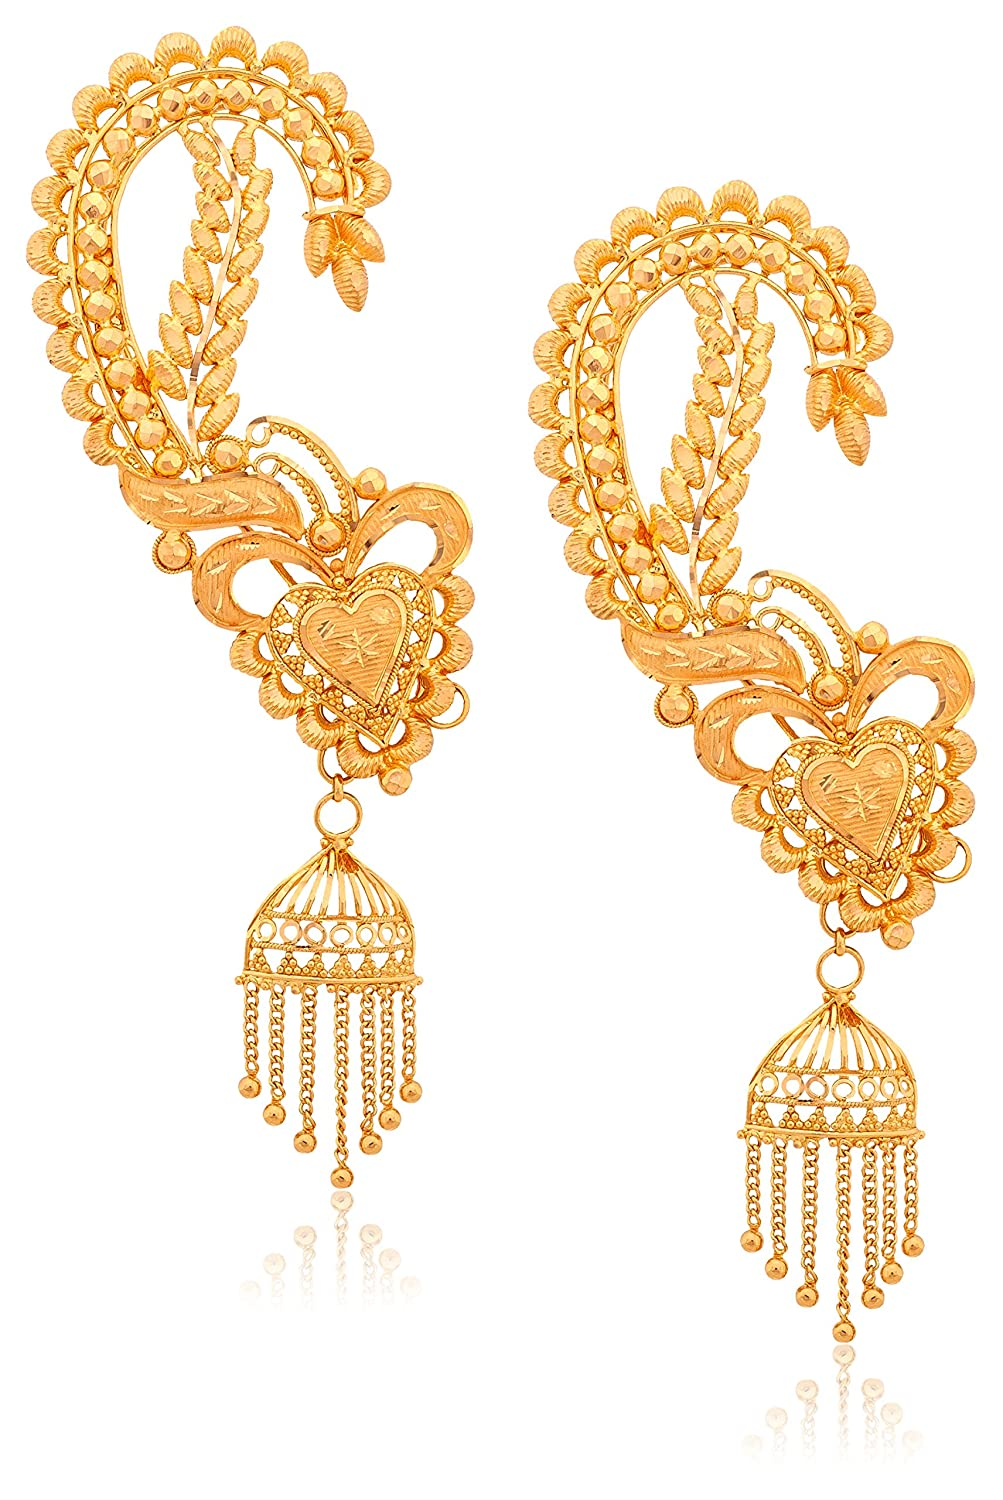 Unusual Senco Gold Gold Earrings Collection Photos - Jewelry ...